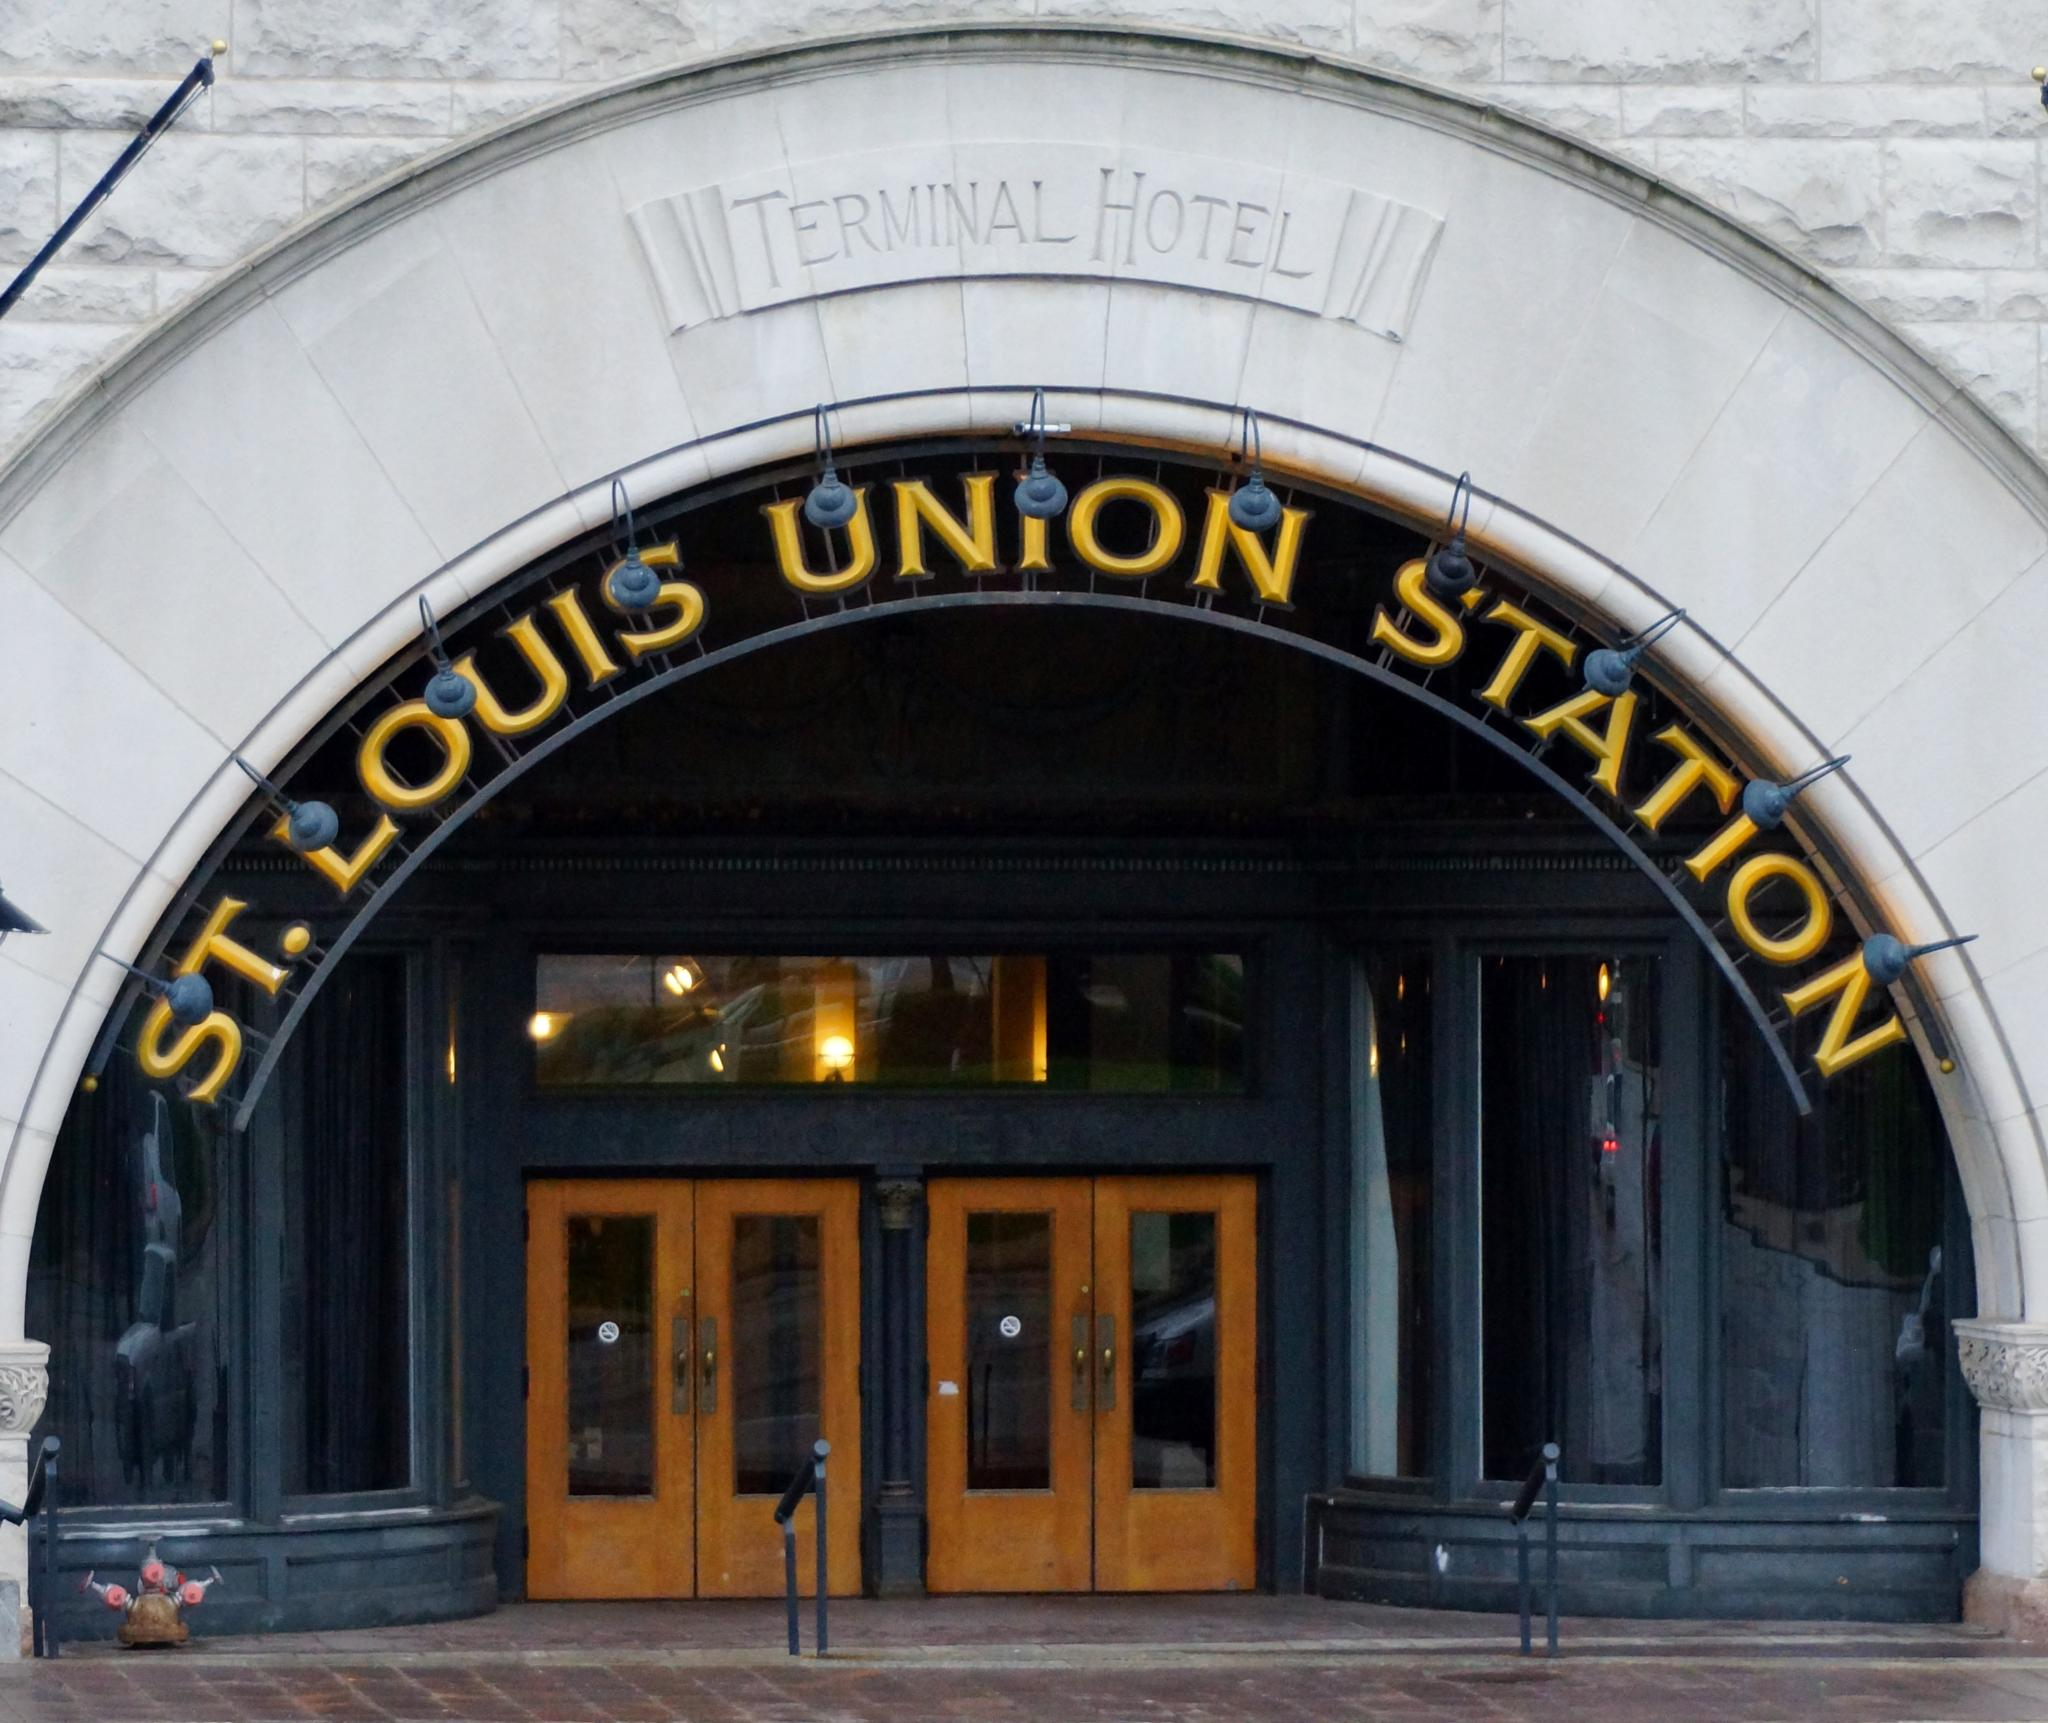 St. Louis Union Station by Gary Cole